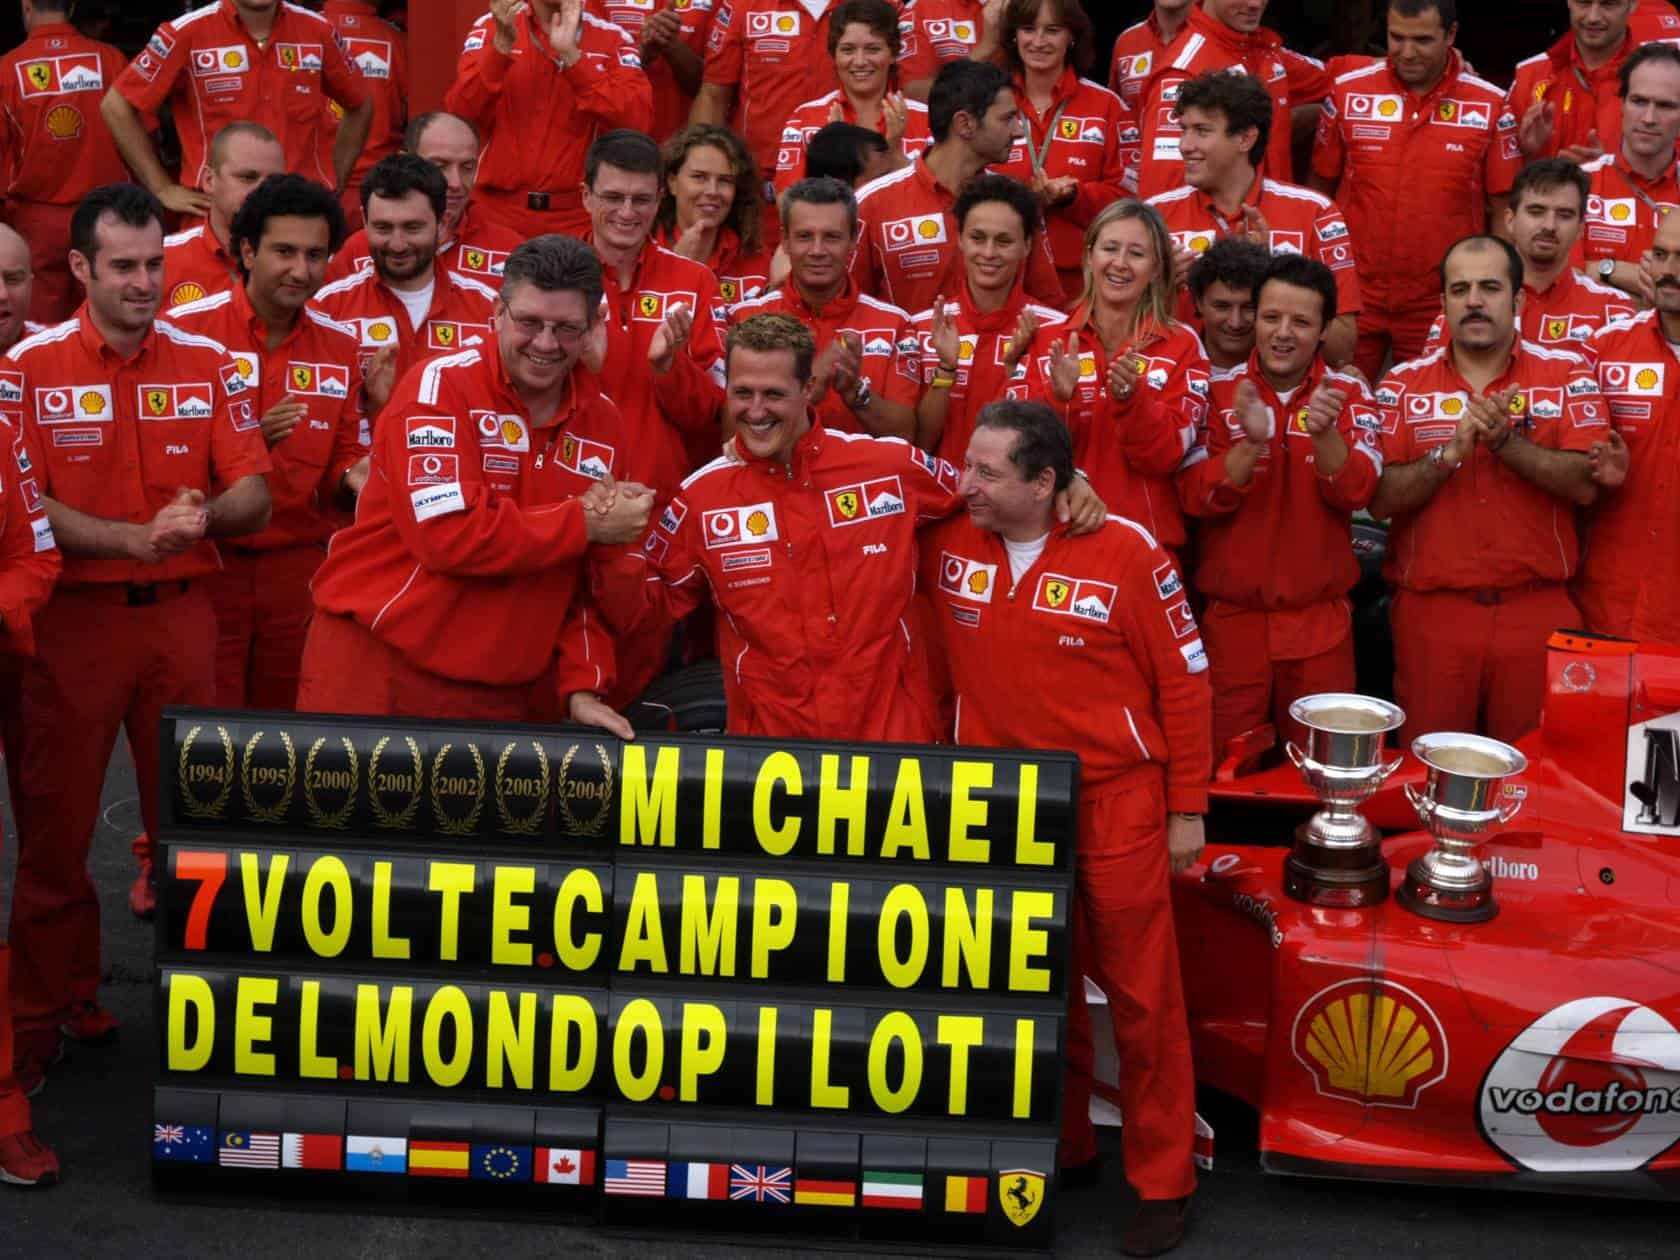 Michael-Schumacher-Ferrari-F2004-Belgian-GP-F1-2004-seventh-title-celebration-Photo-Ferrari.